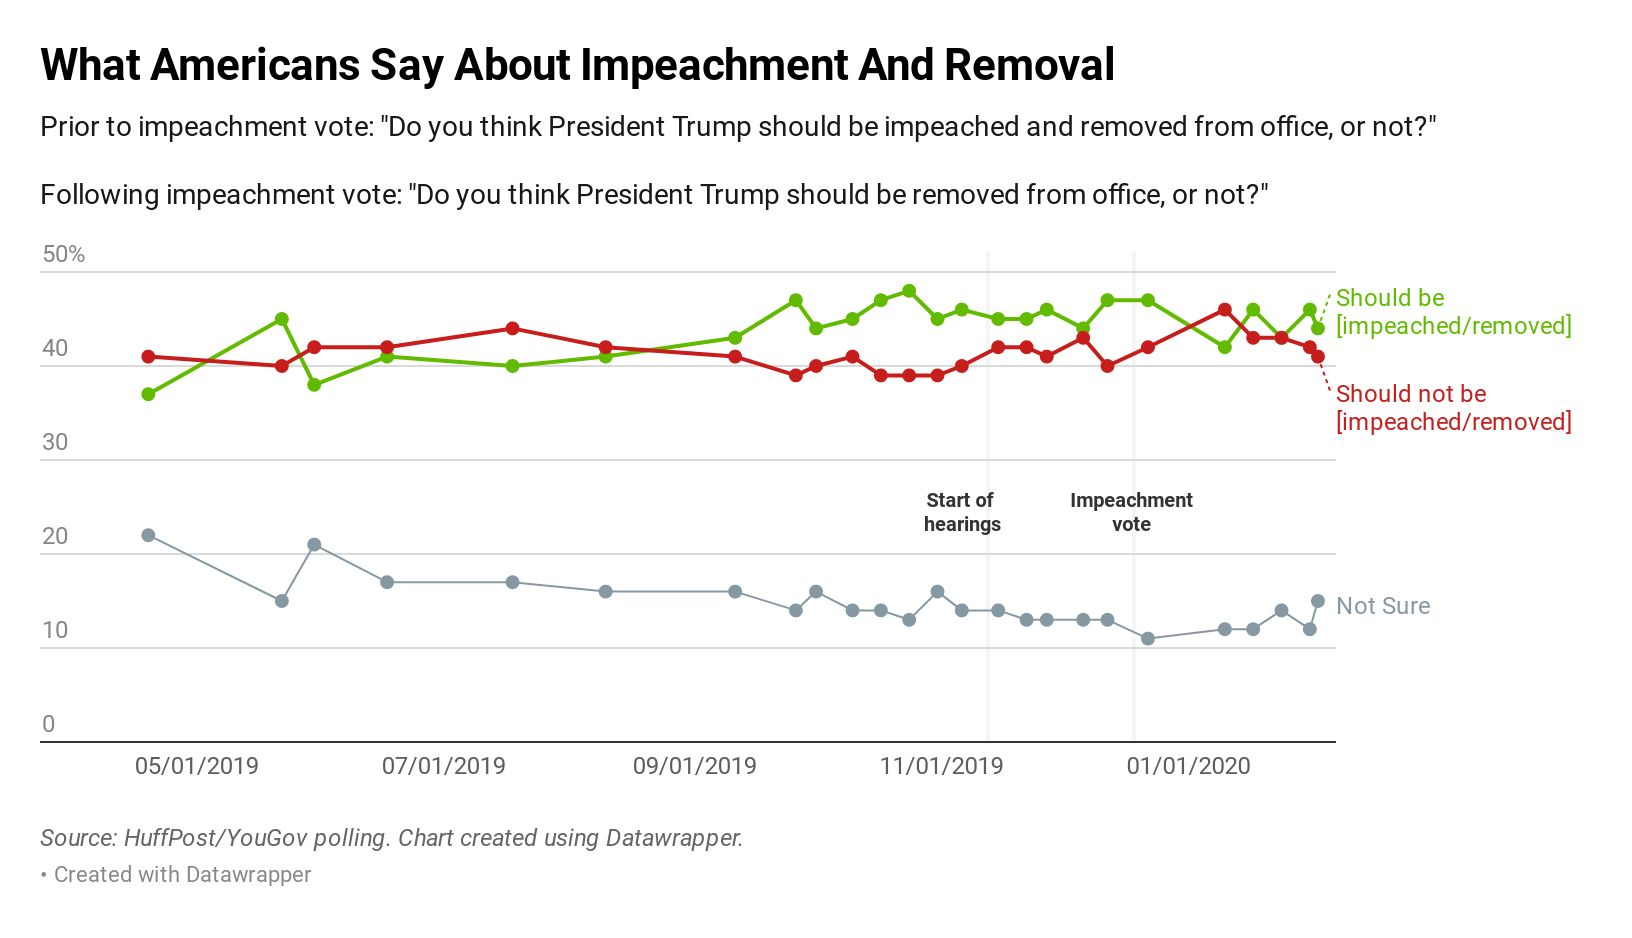 In the past months, public opinion has remained largely divided.